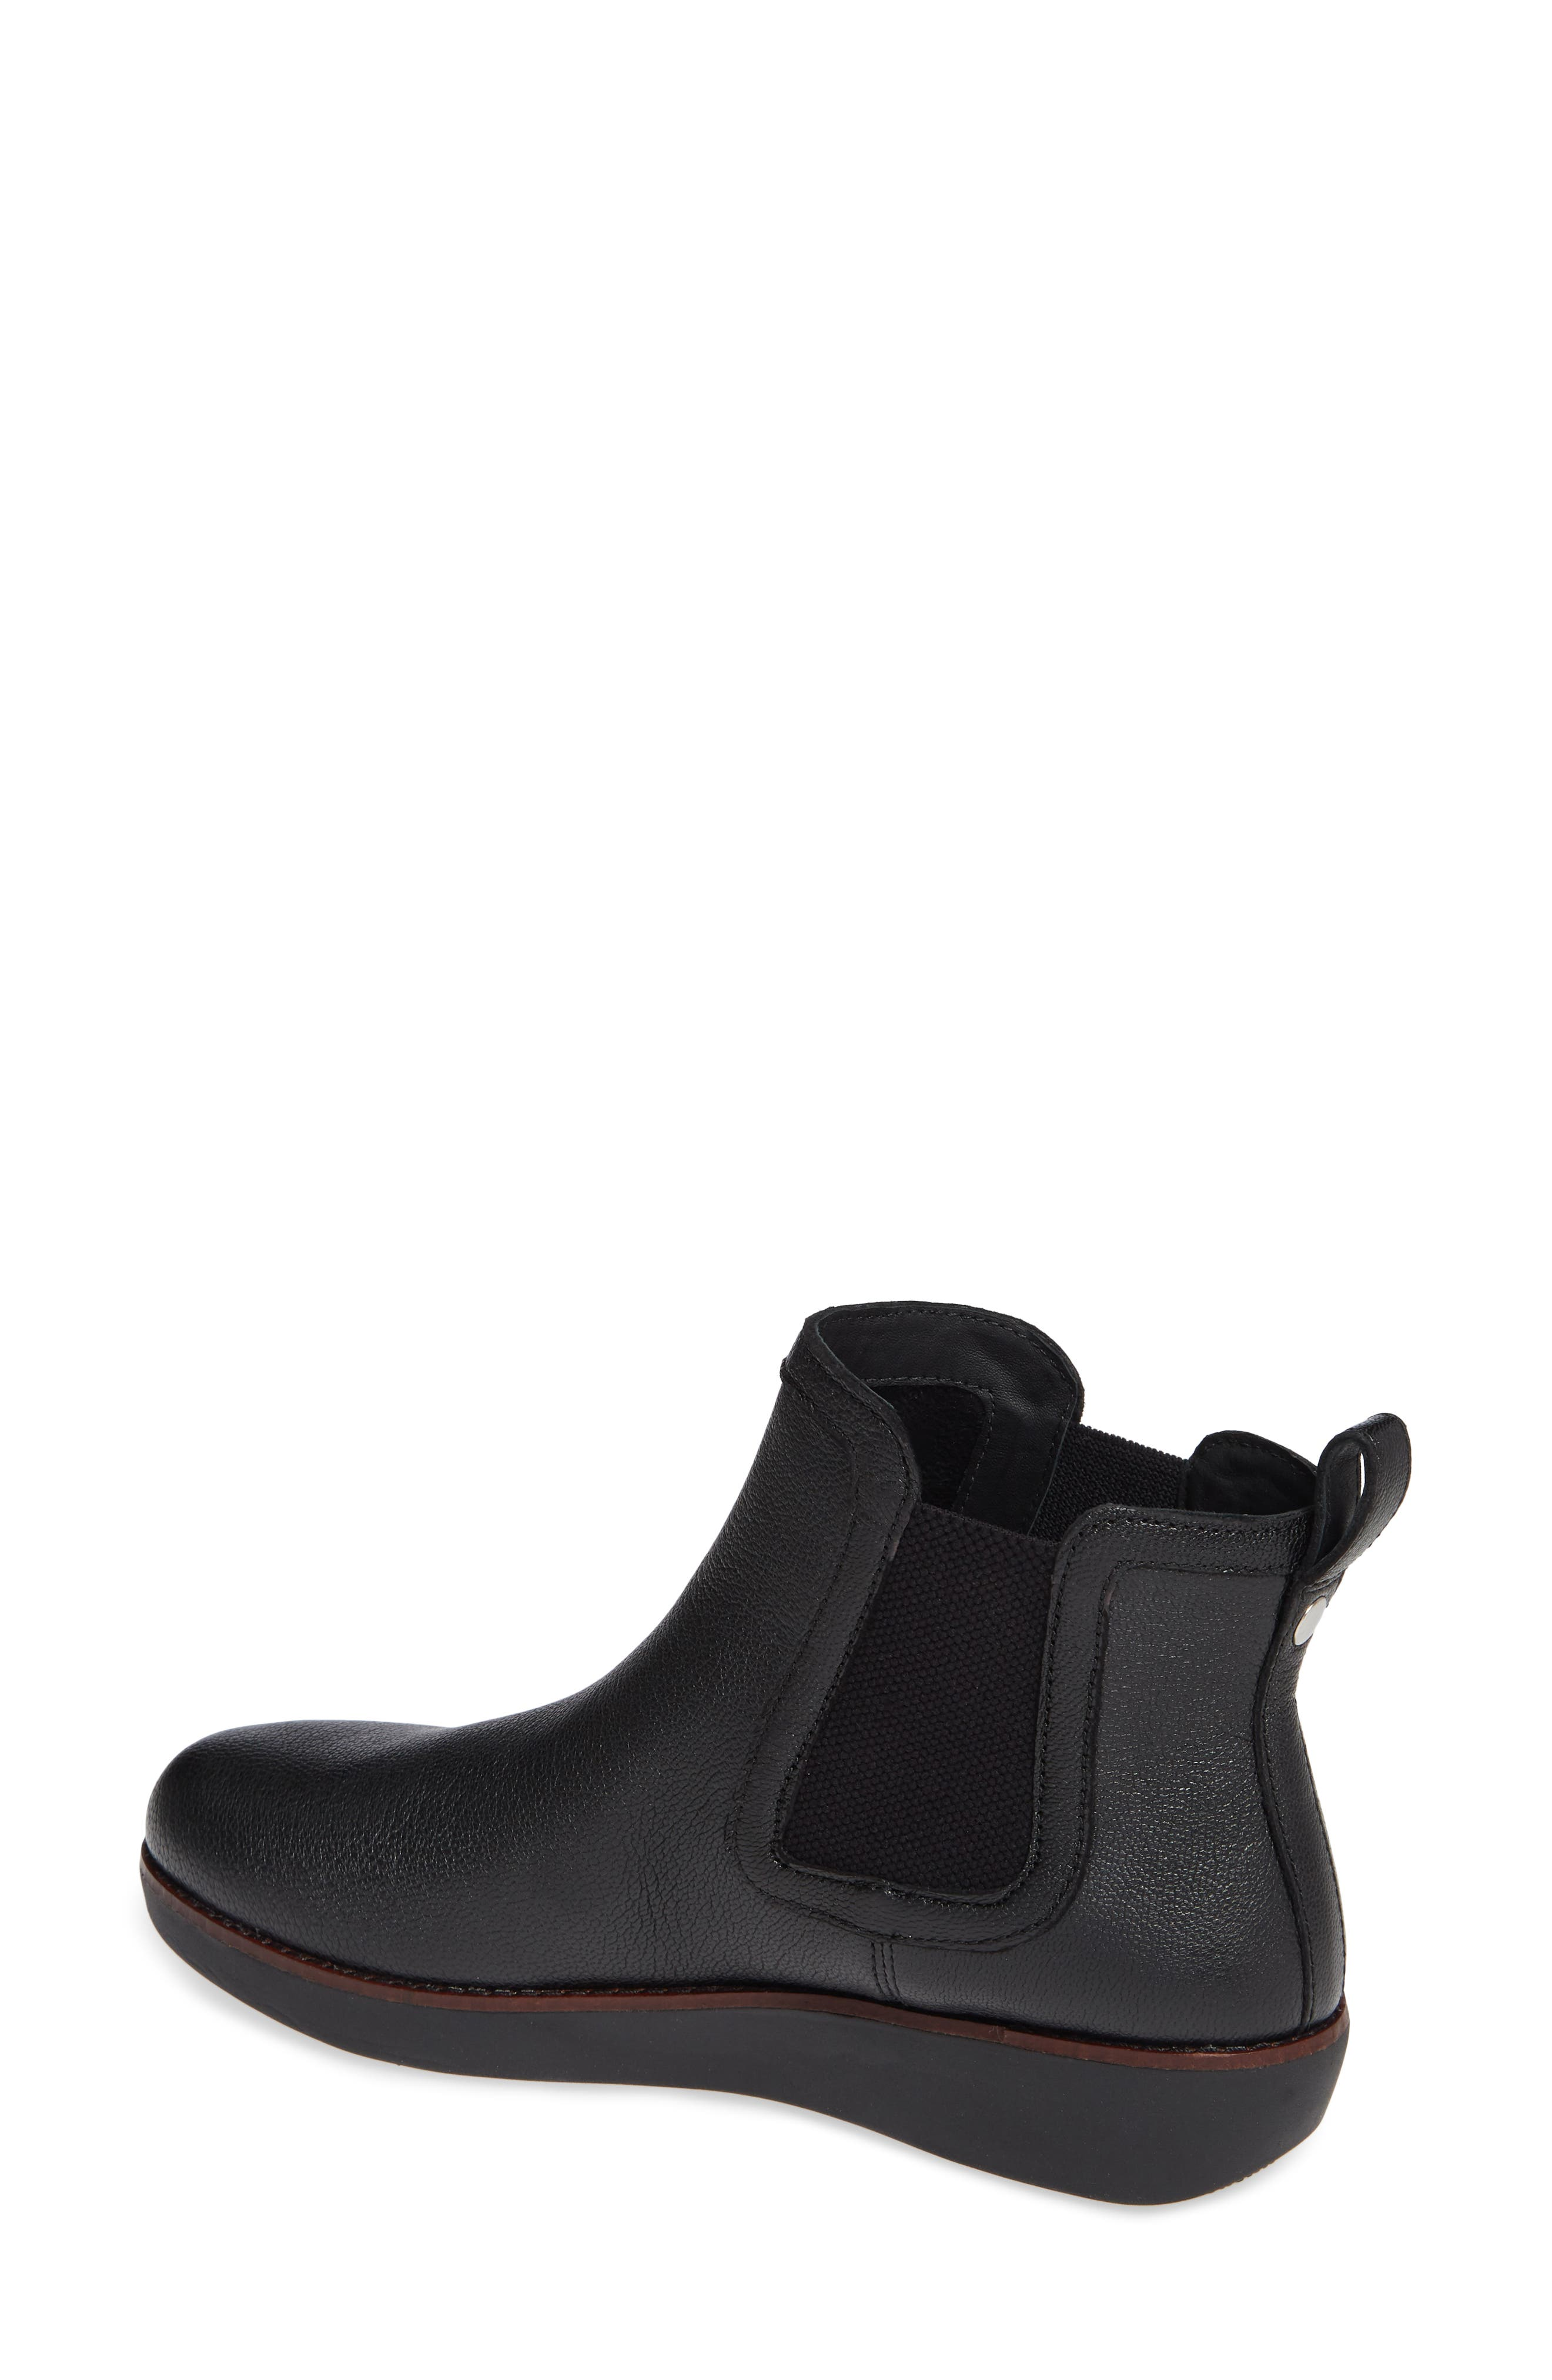 6132bee8170 Women s Fitflop Boots